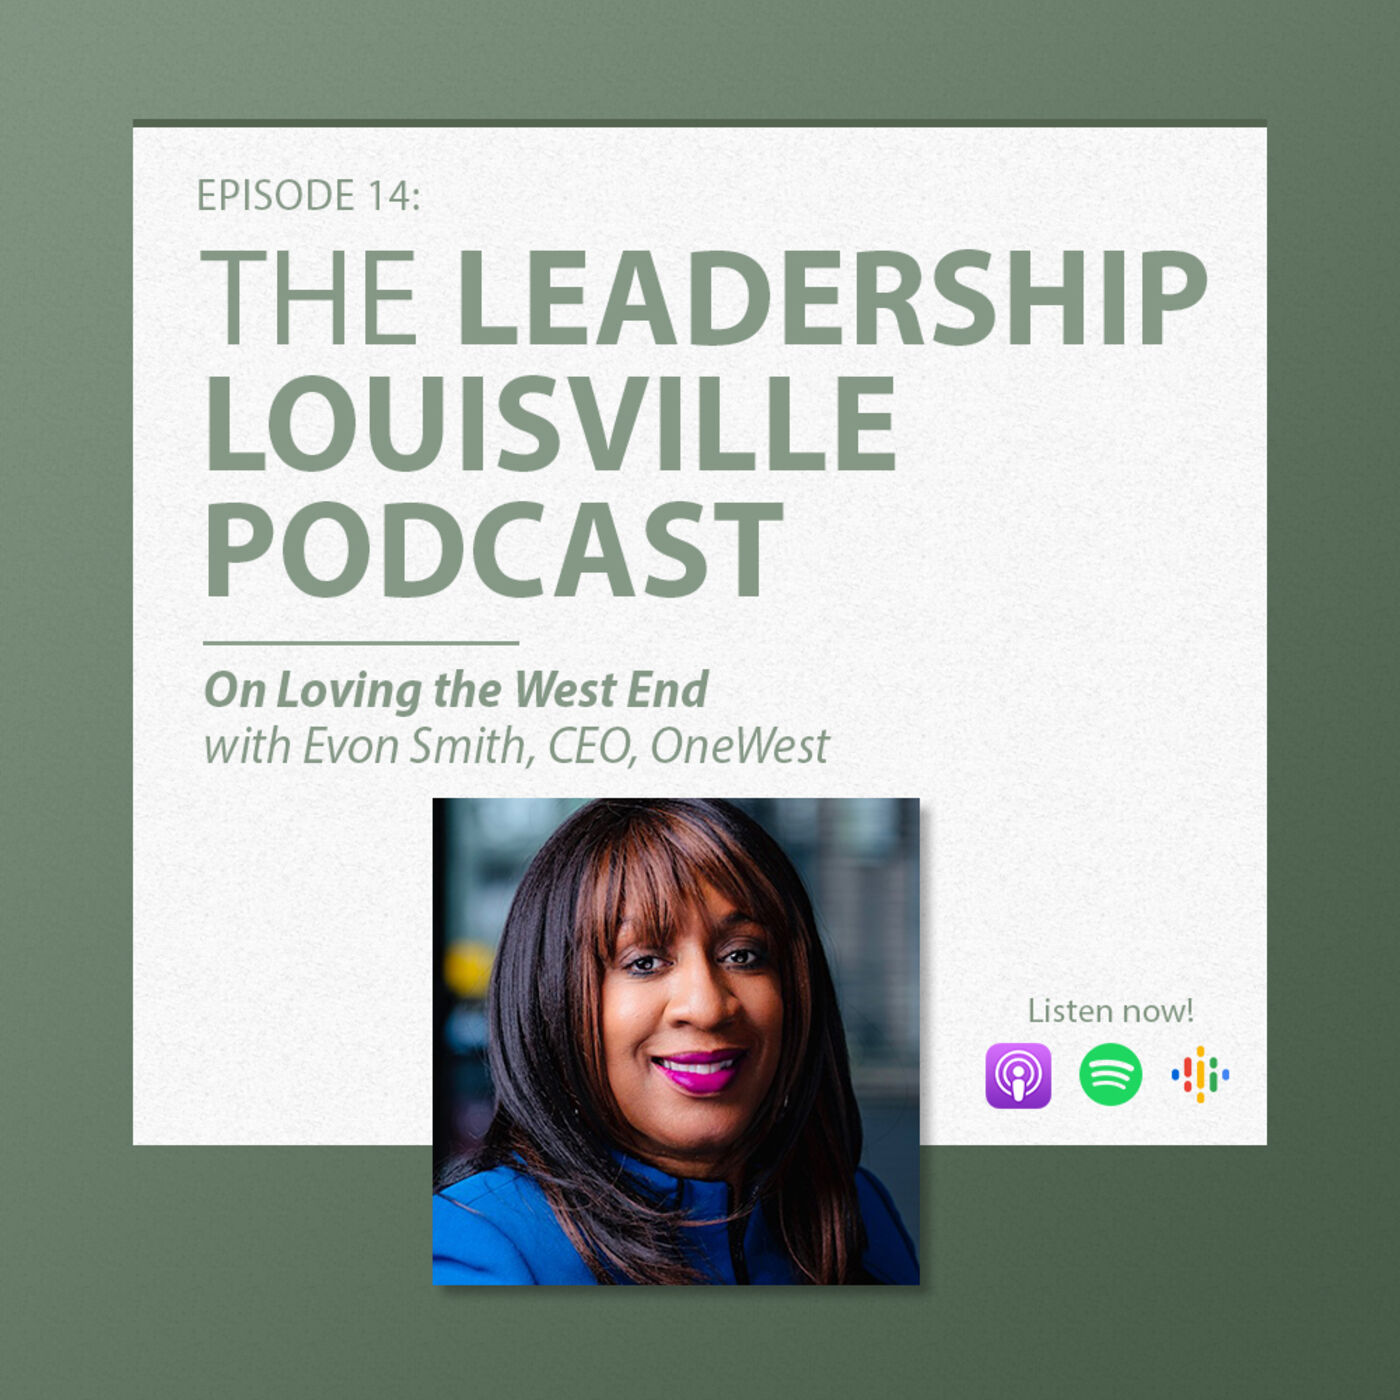 On loving the West End with Evon Smith, President & CEO, OneWest